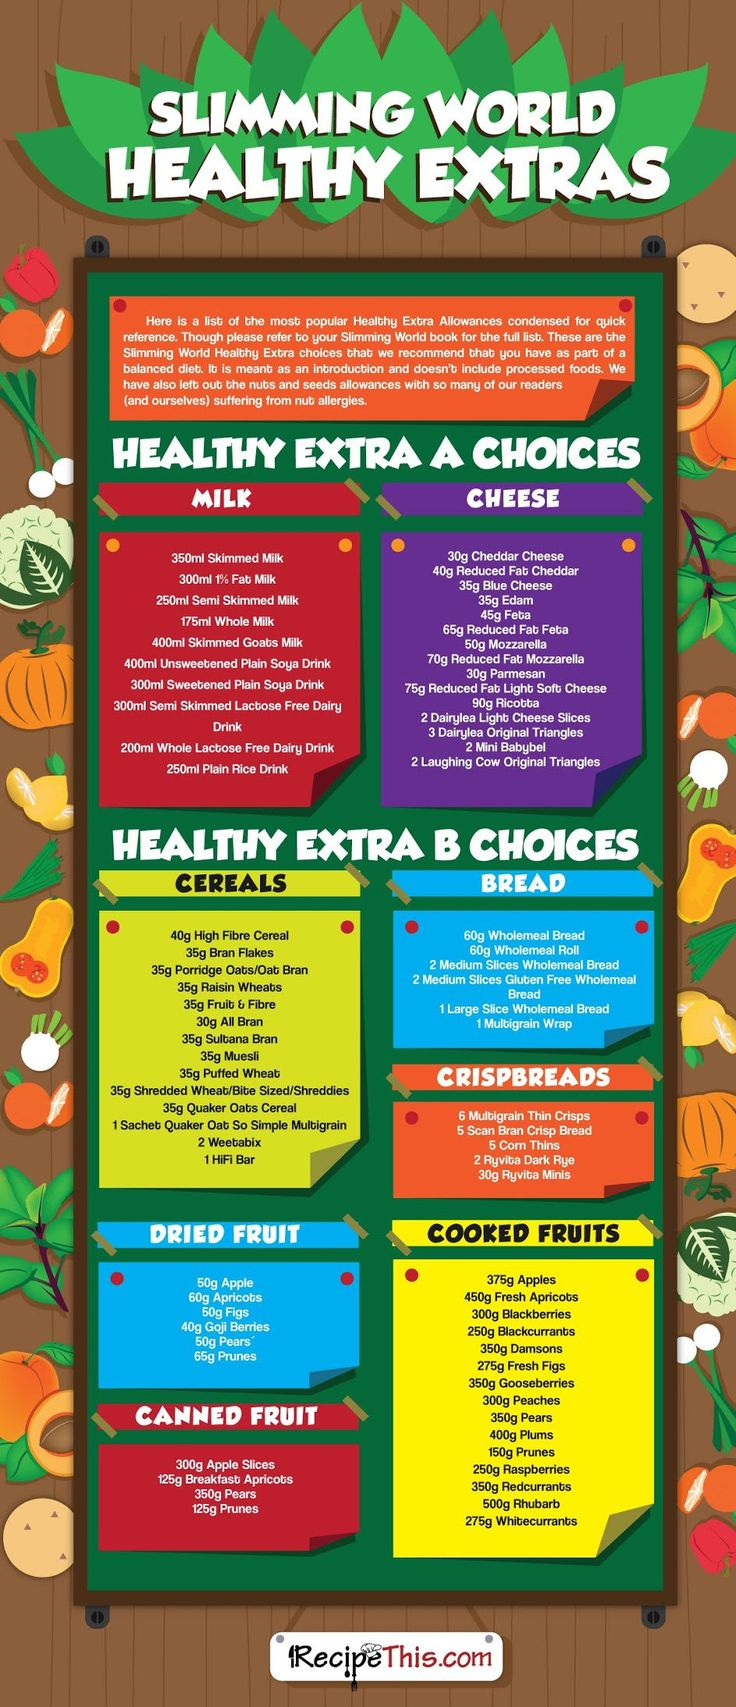 Slimming World   The Slimming World healthy extras brought to you by RecipeThis.com